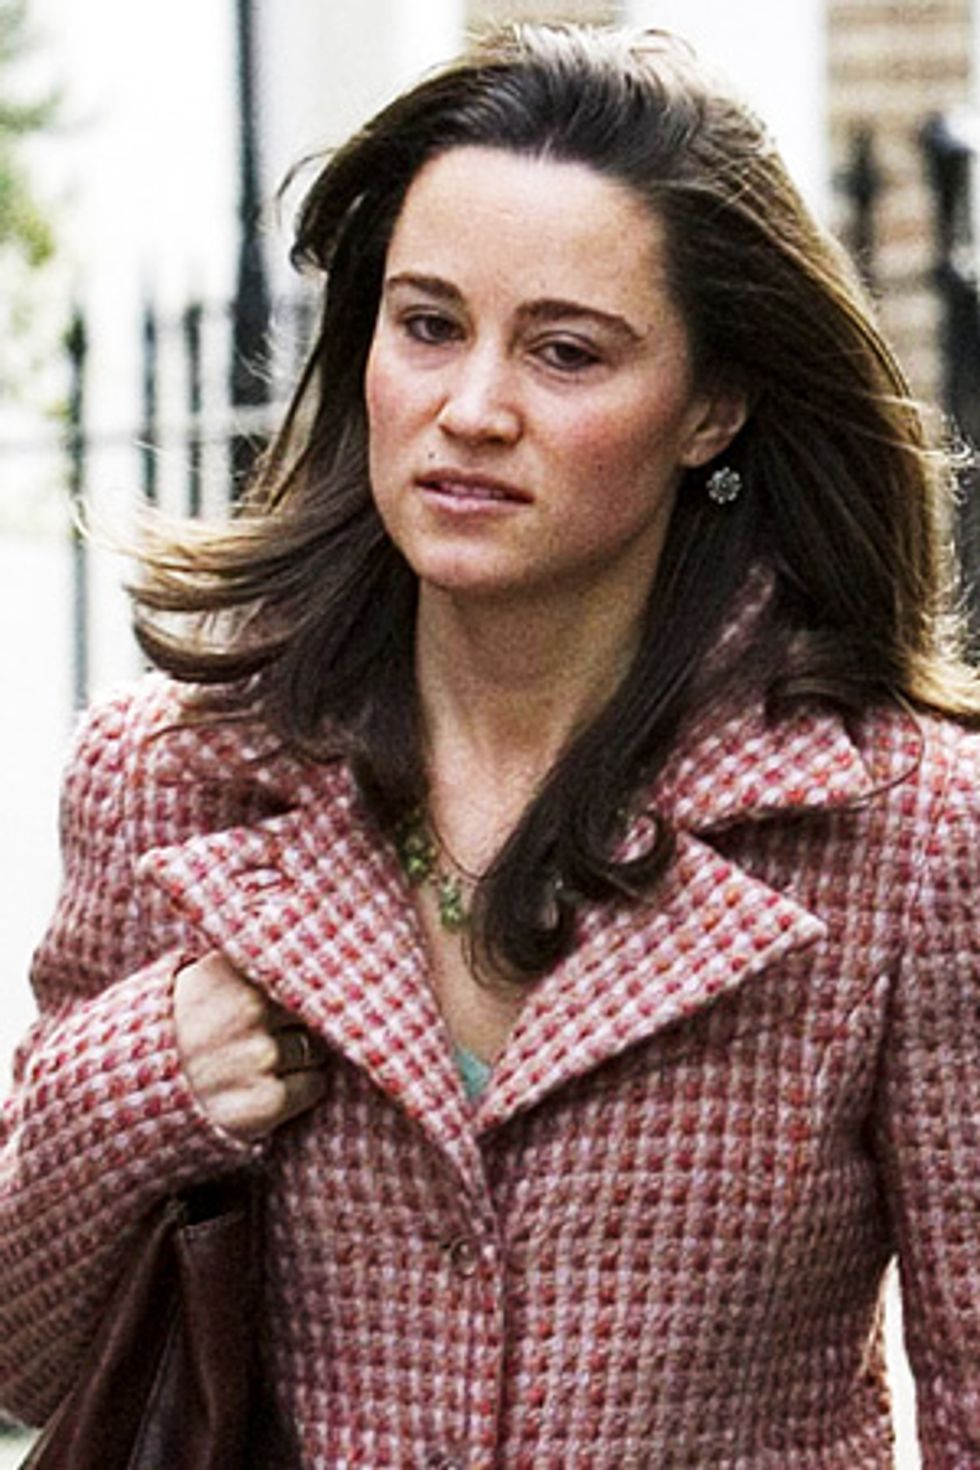 Pippa Middleton Likes an Aristo Cutie!